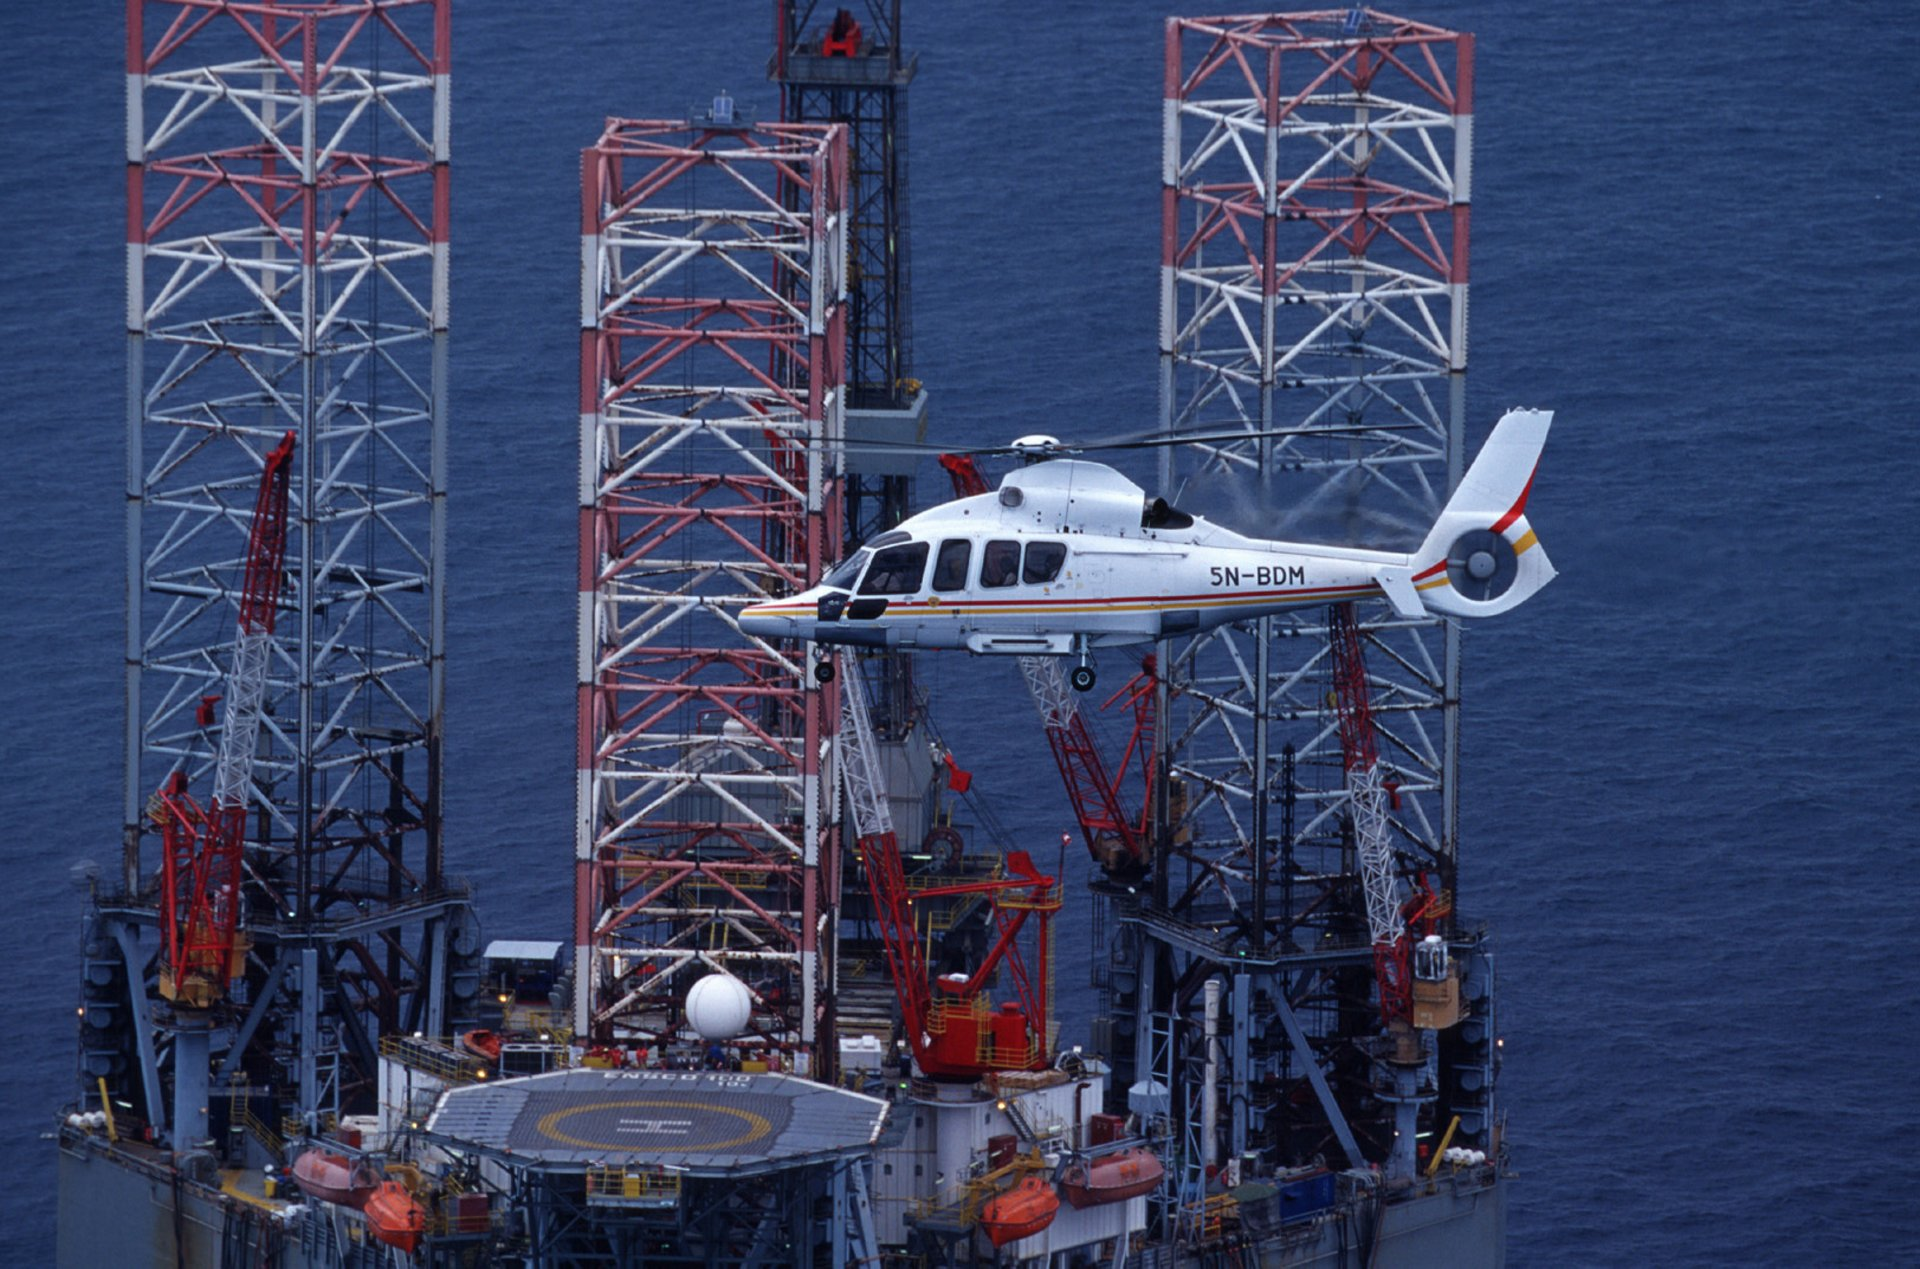 The H155 fulfils the most stringent safety requirements for missions to offshore platforms, with full authority digital engine controls (FADEC), a 4-axis automatic flight control system and cutting-edge digital avionics to reduce pilot workload and support the highest levels of flight safety.